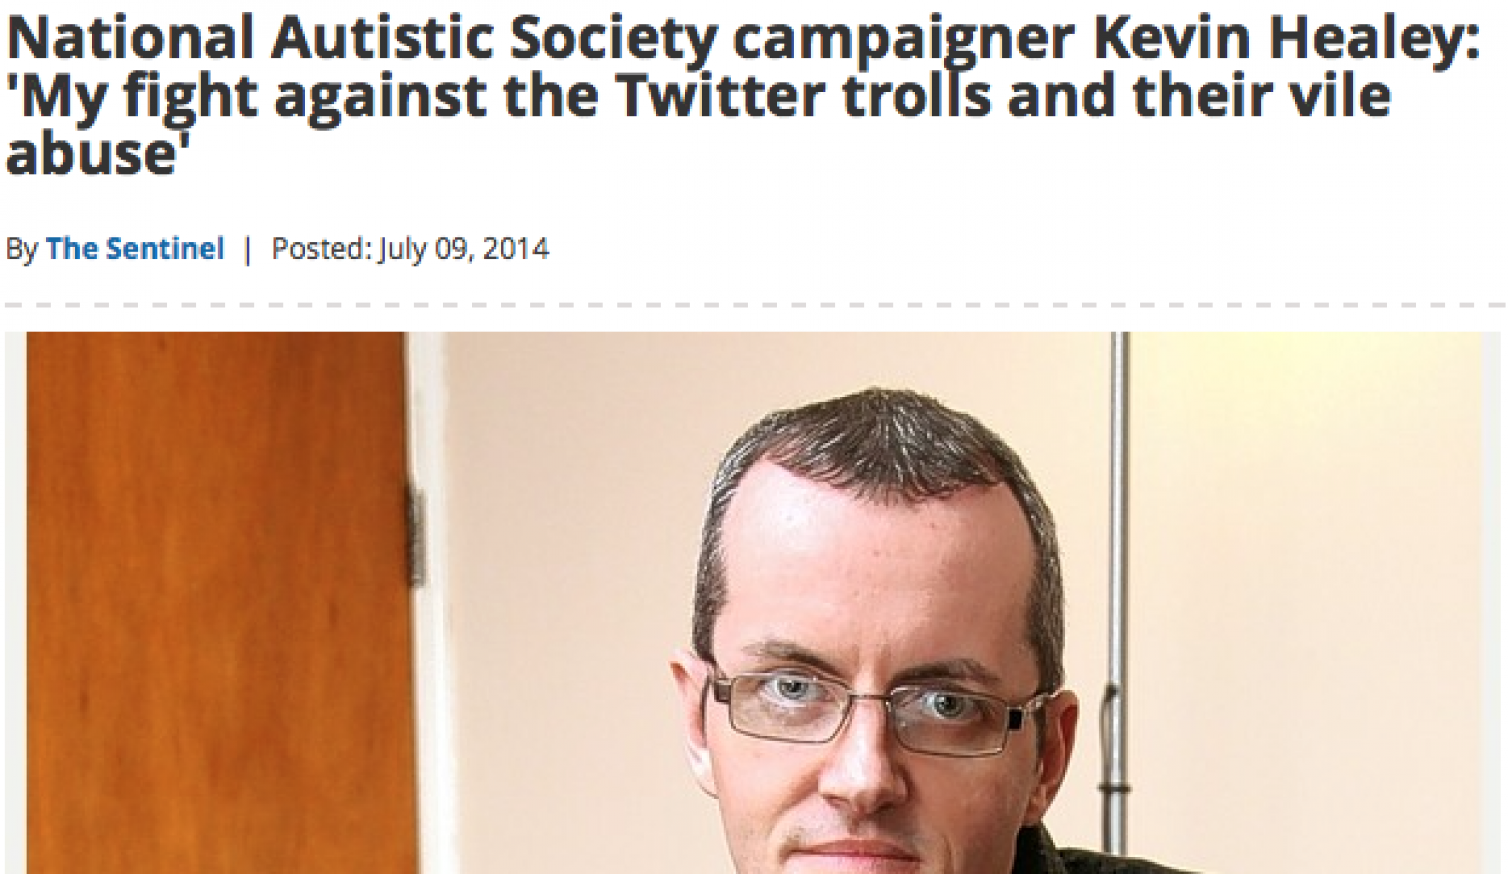 My campaign against twitter features in local press